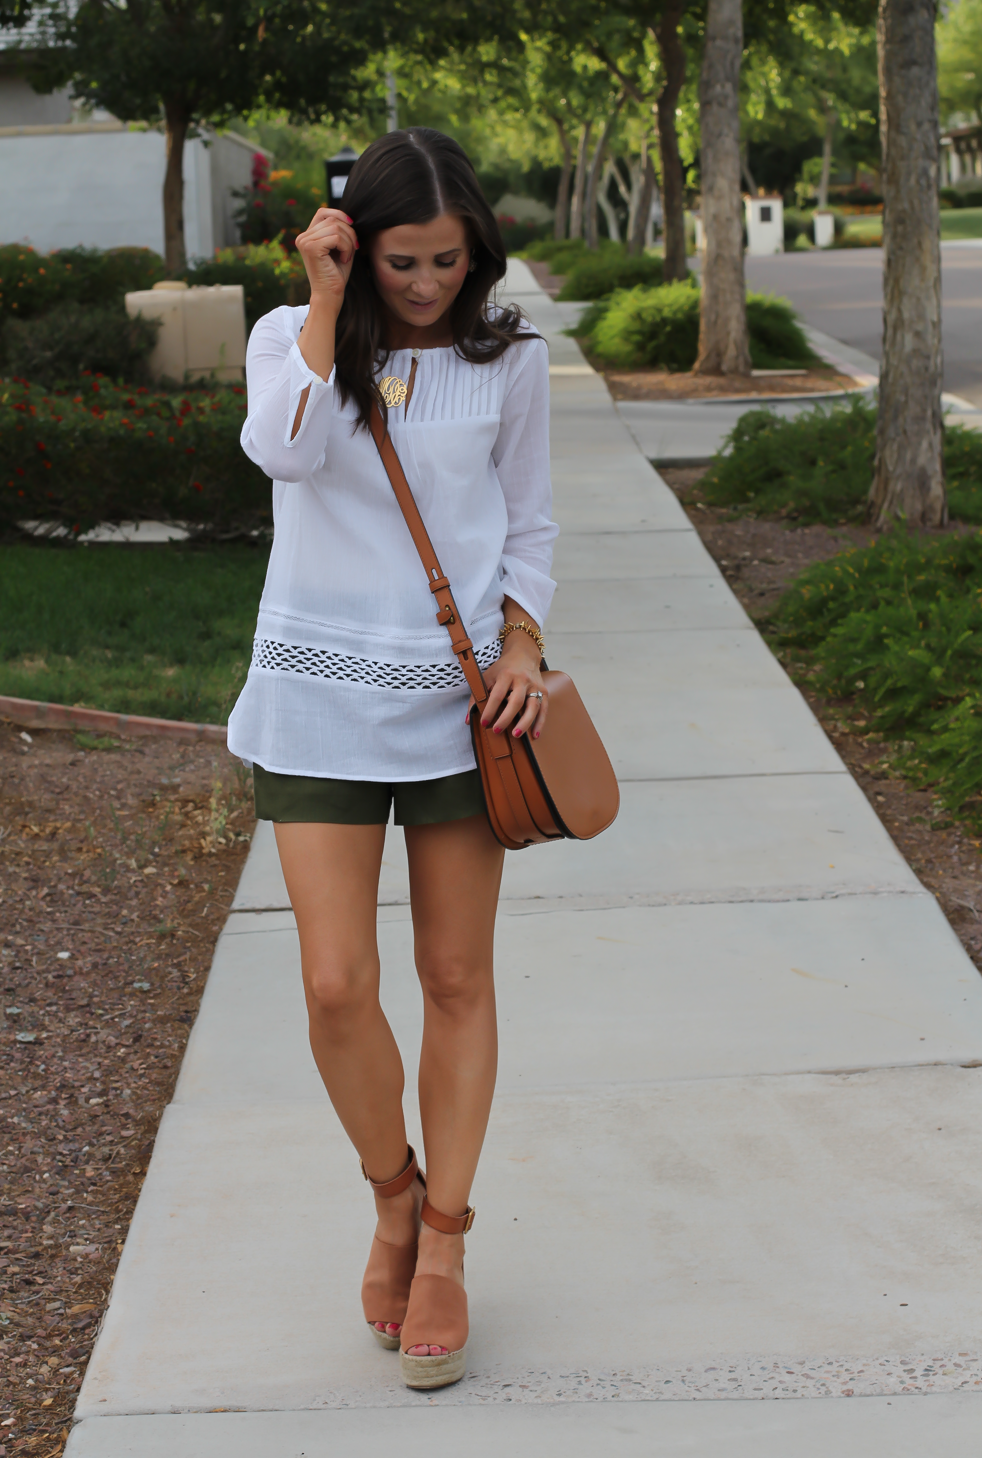 Gauze White Lace Tunic, Green Linen Shorts, Brown Suede Espadrilles, Brown Leather Crossbody Bag, Old Navy, J.Crew, Chloe, Tory Burch 6